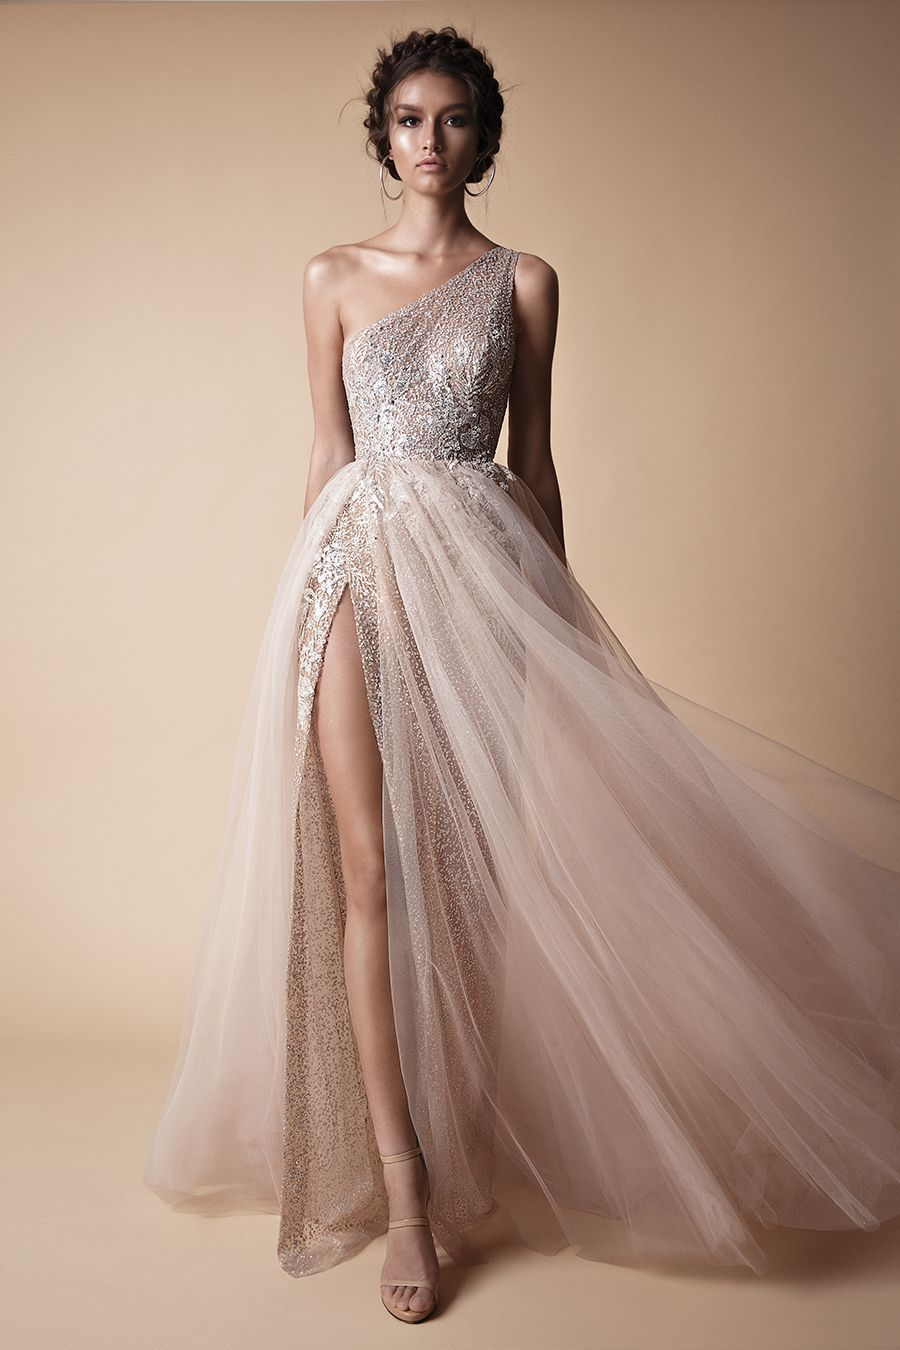 A gorgeous sexy one shoulder light rose coloured wedding gown with